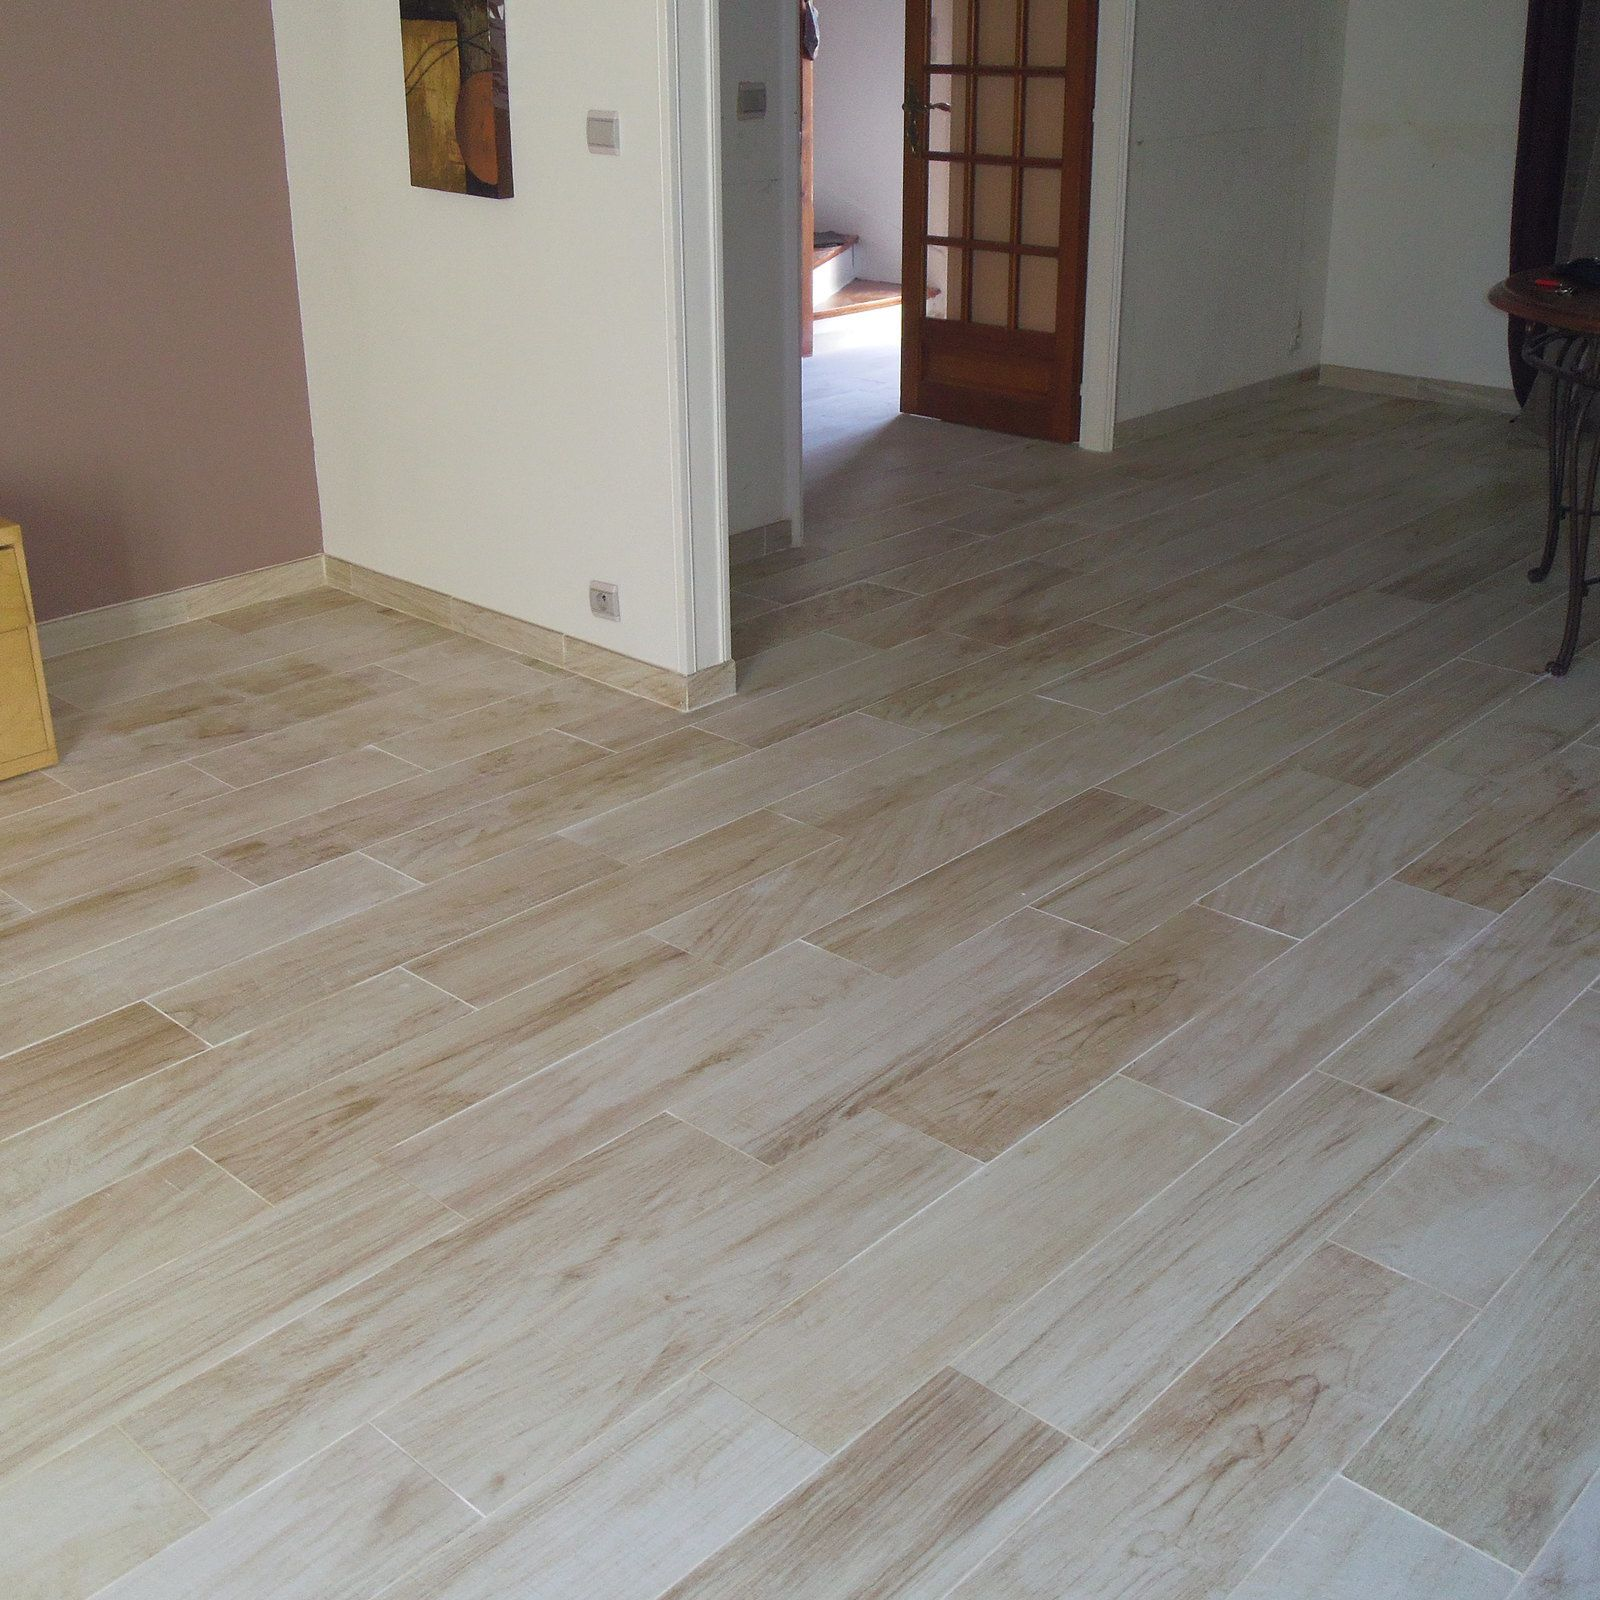 Pose d 39 un carrelage imitation parquet r novation en b timent for Pose carrelage imitation parquet